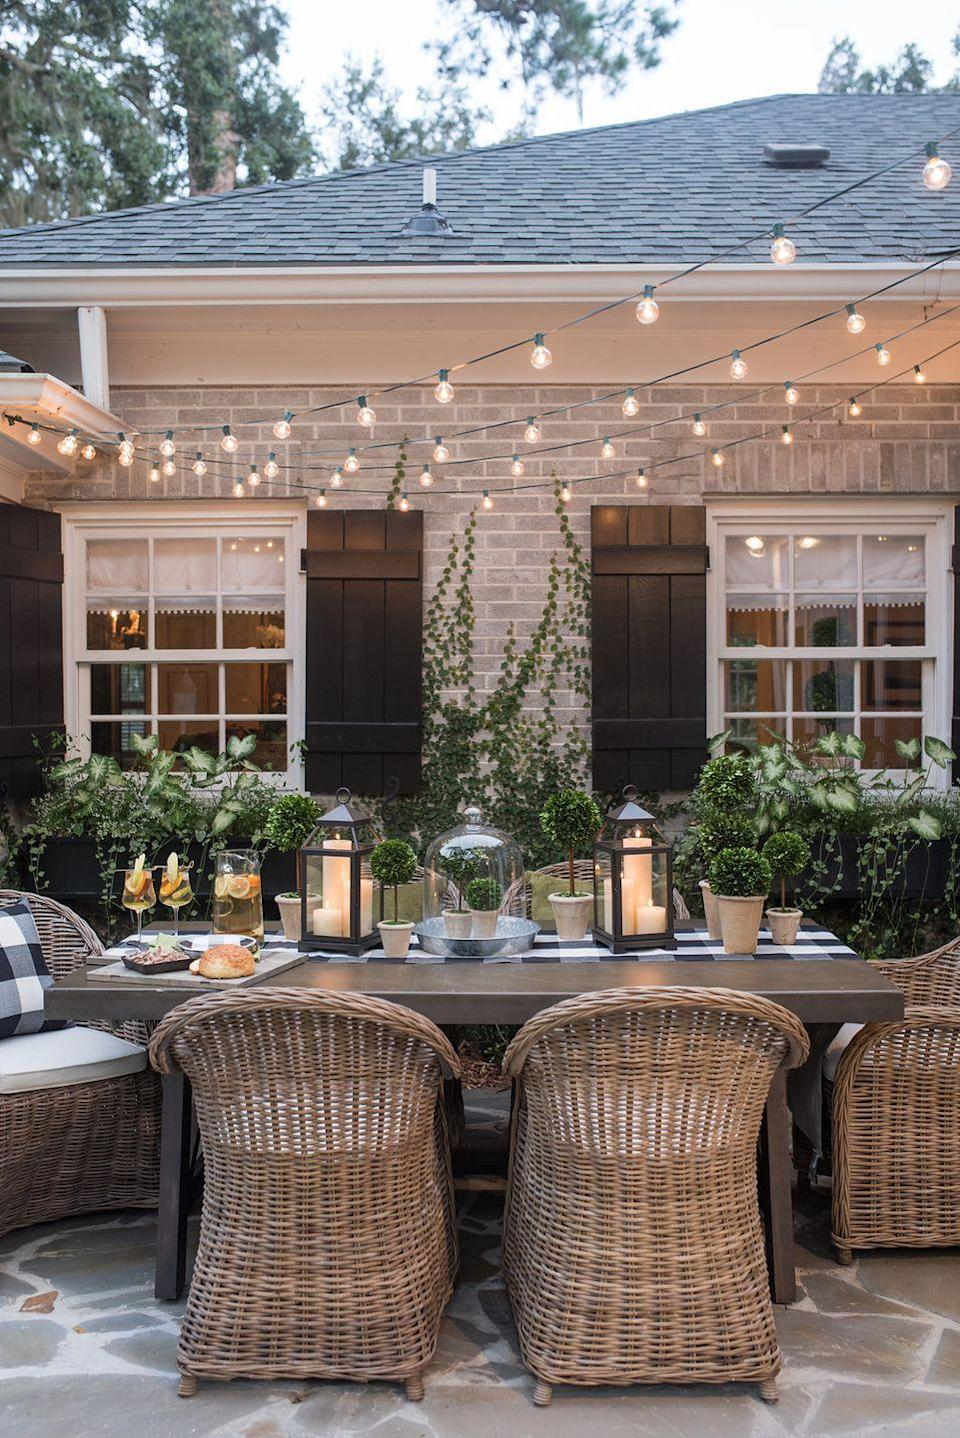 """<p>Create the perfect outdoor dining space for summer dinner parties with a few strands of string lights. Scatter some lanterns on the table, too, in order to achieve an outdoor candlelight glow.</p><p><strong>See more at</strong> <strong><a href=""""http://www.lavinlabel.com/2017/09/06/dog-days-summer/"""" rel=""""nofollow noopener"""" target=""""_blank"""" data-ylk=""""slk:Lavin Label"""" class=""""link rapid-noclick-resp"""">Lavin Label</a></strong><strong>.</strong></p><p><a class=""""link rapid-noclick-resp"""" href=""""https://www.amazon.com/Backyard-Hanging-Outdoor-Pergola-Deckyard/dp/B00RQHBZVS/ref=sr_1_12?tag=syn-yahoo-20&ascsubtag=%5Bartid%7C10050.g.3404%5Bsrc%7Cyahoo-us"""" rel=""""nofollow noopener"""" target=""""_blank"""" data-ylk=""""slk:SHOP STRING LIGHTS"""">SHOP STRING LIGHTS</a></p>"""